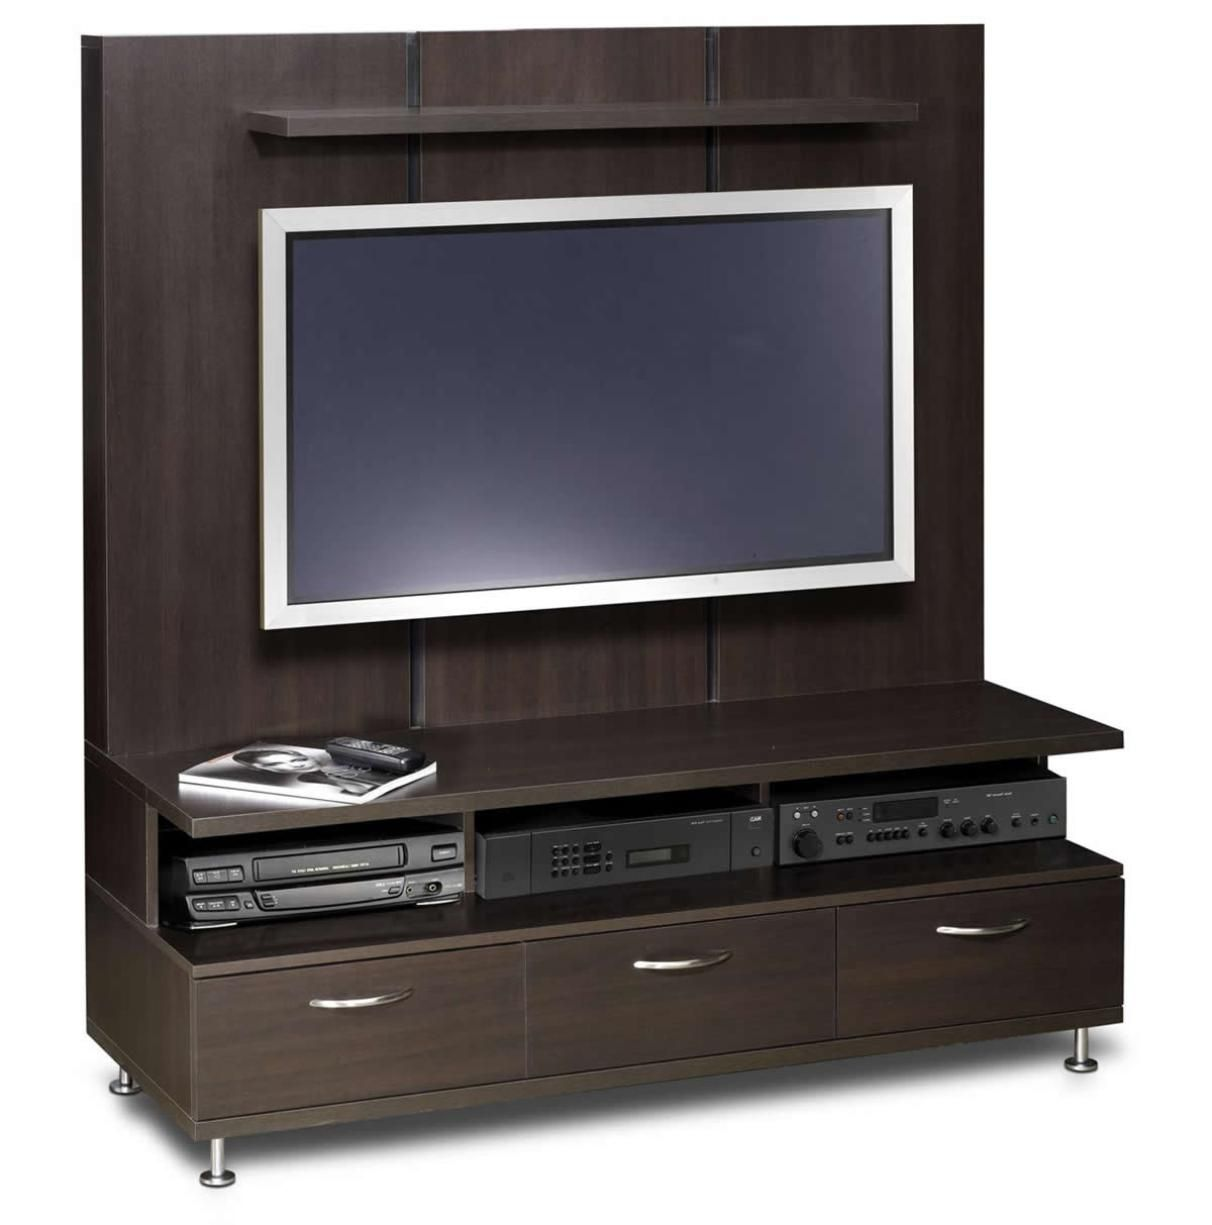 woodworking plans plasma tv stand plans free download. Black Bedroom Furniture Sets. Home Design Ideas